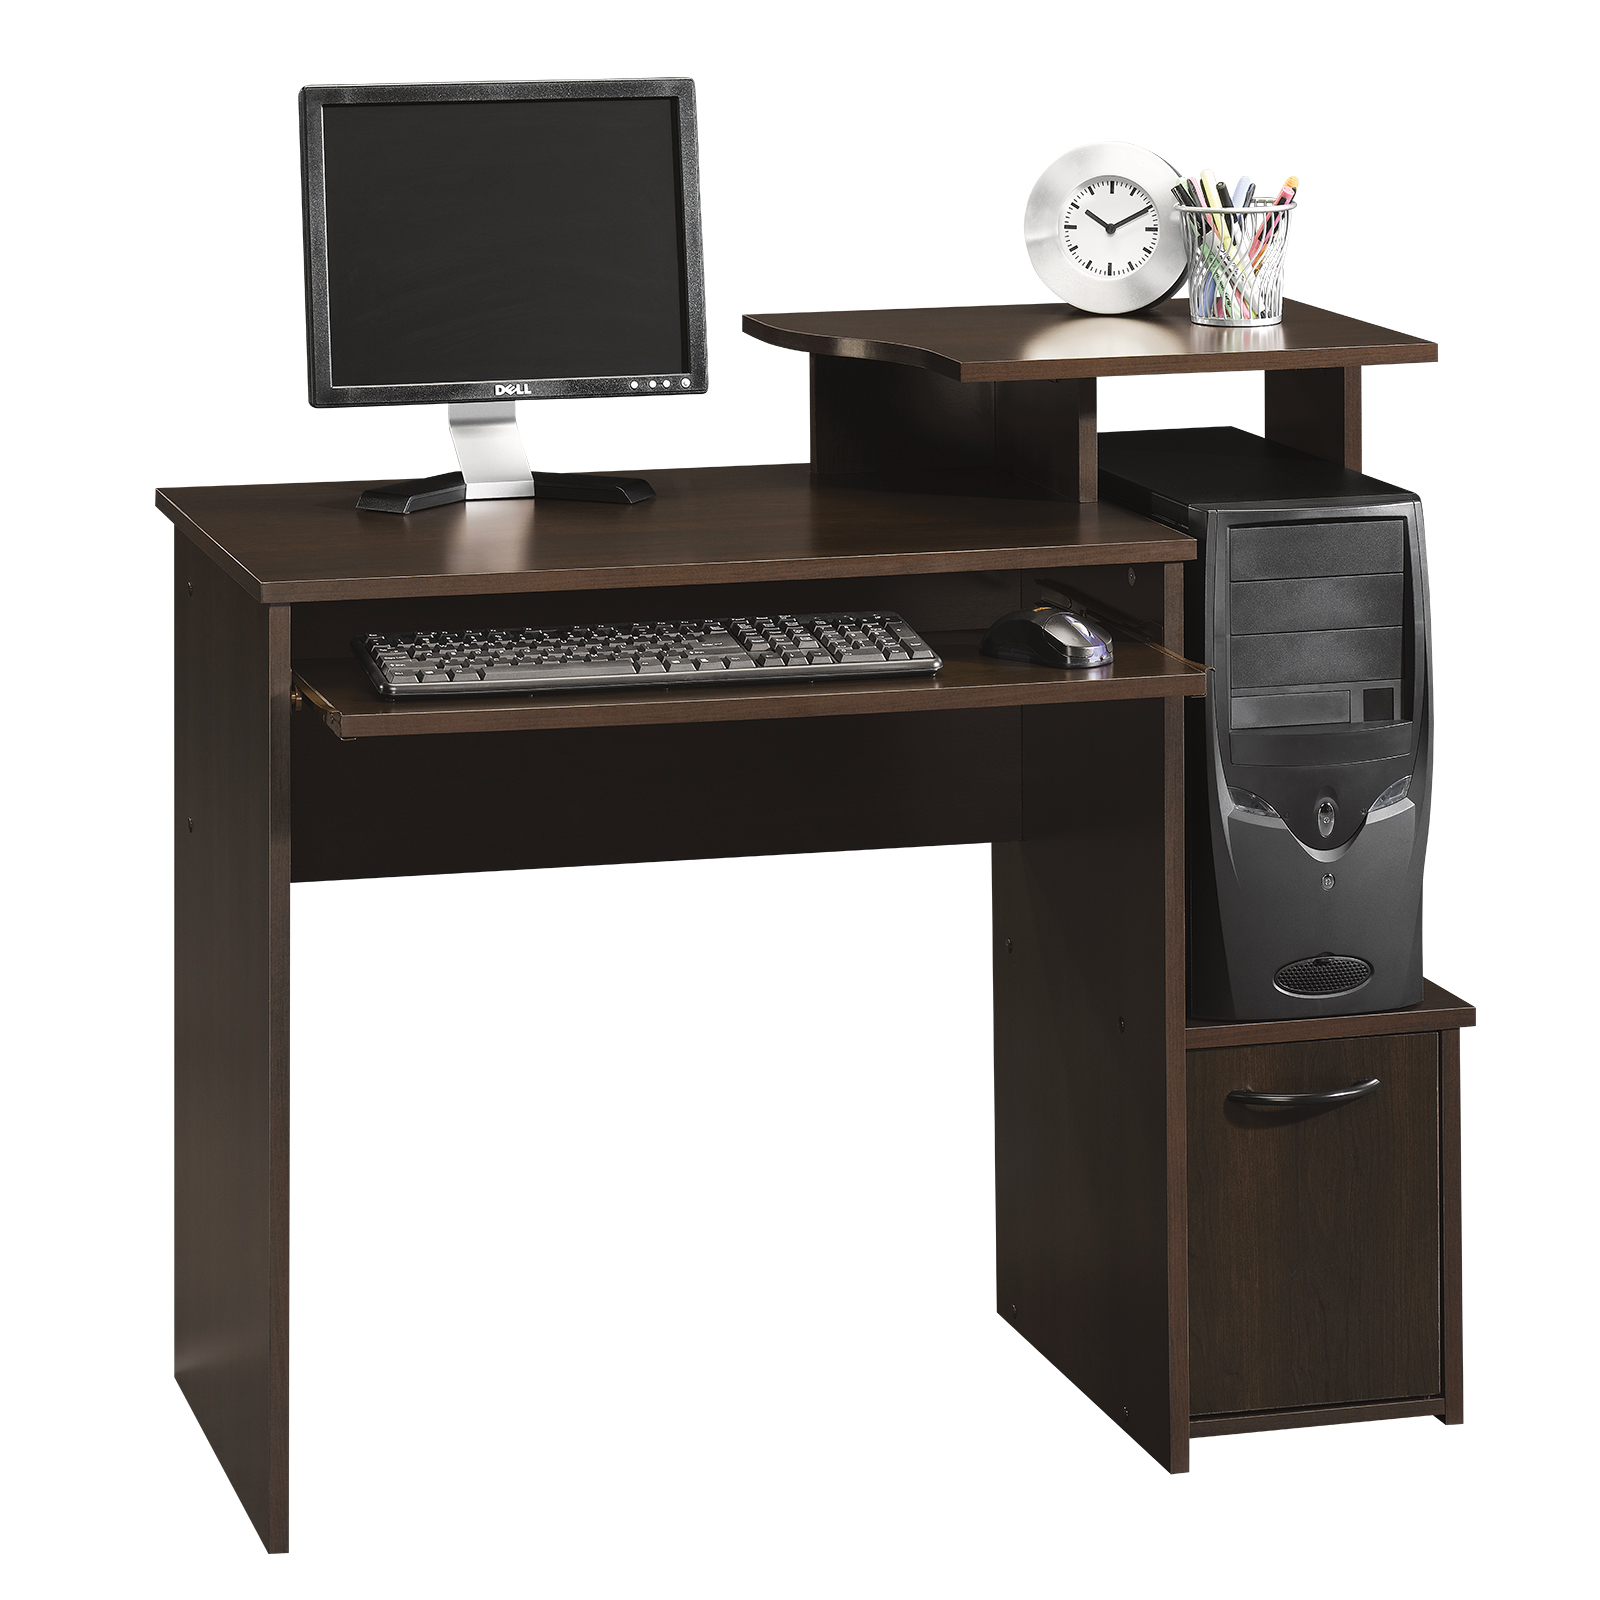 Sauder Computer Desks | Small Corner Desk with Hutch | L Shaped Desks with Hutch